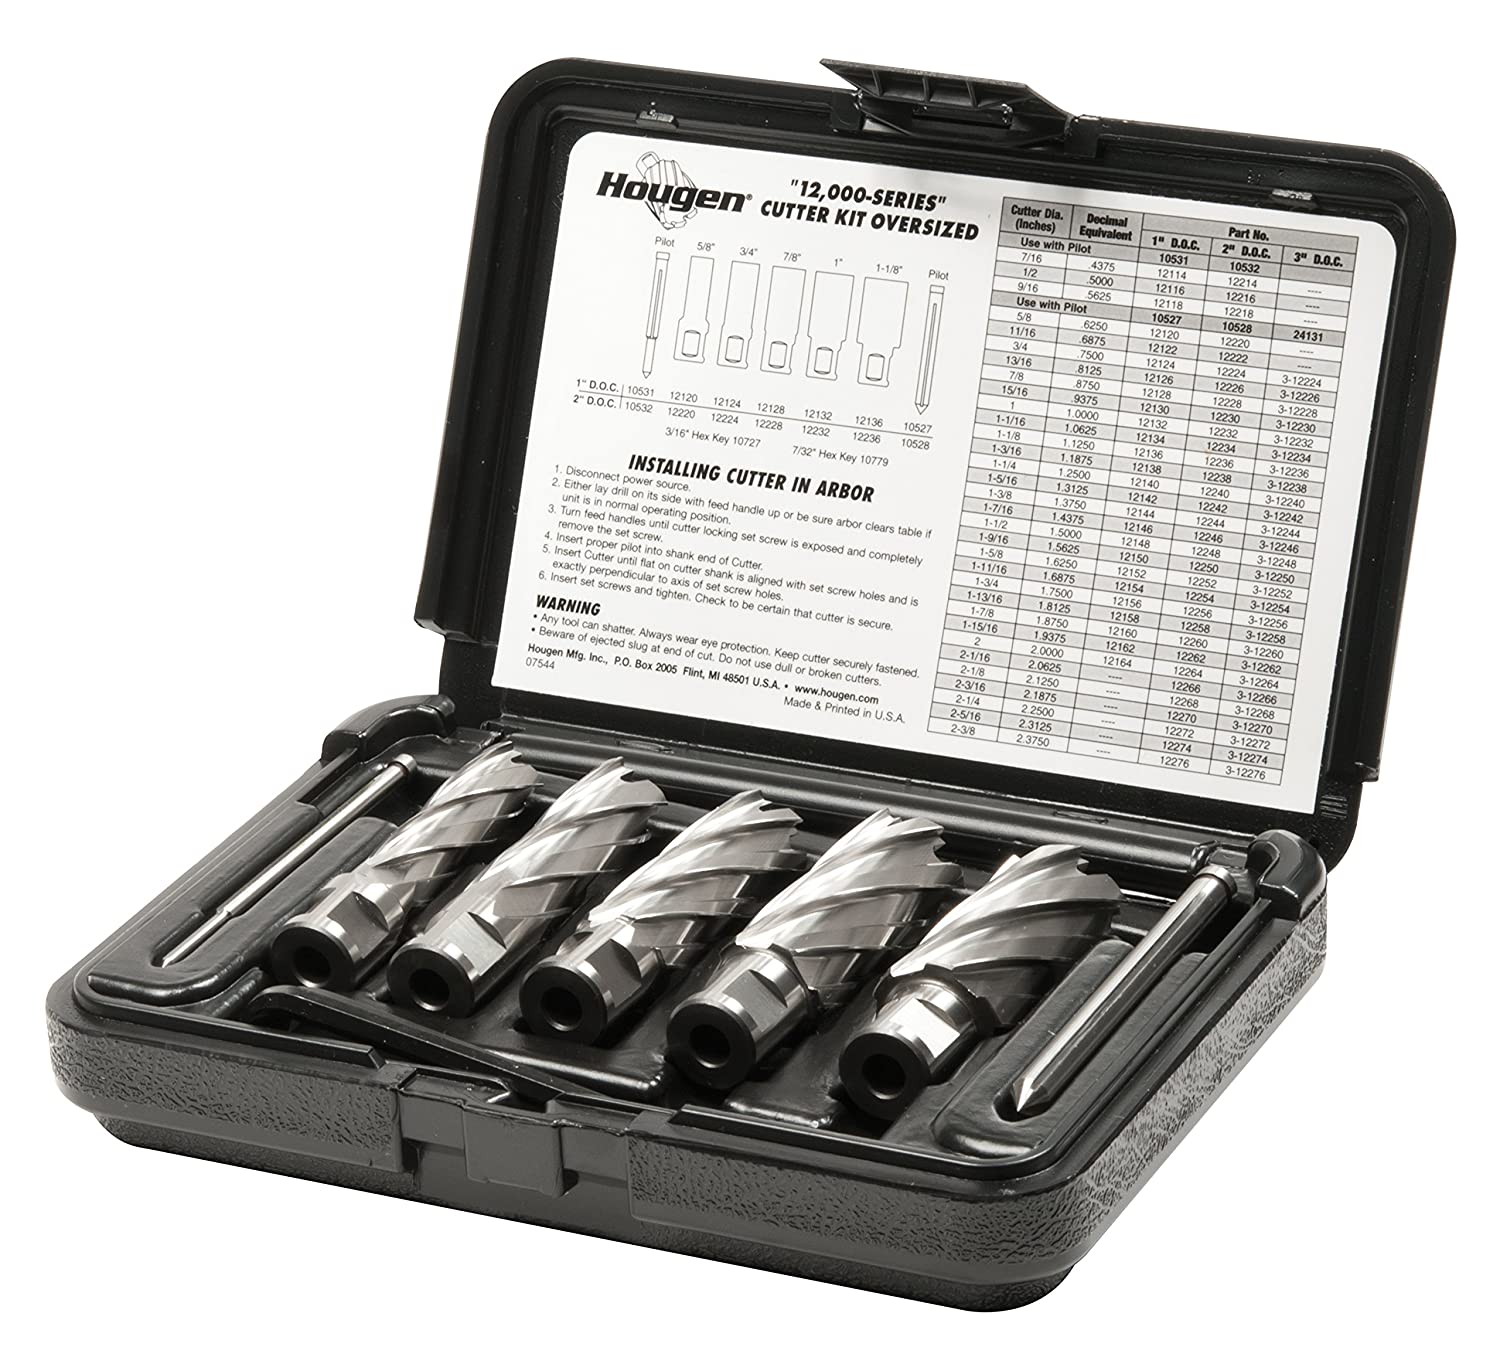 3//4 1-1//8 Rotabroach Cutters in a plastic case Includes Hex Wrenches and 2 pilots 2 Depth of Cut 7//8 Hougen 12006 5//8 1